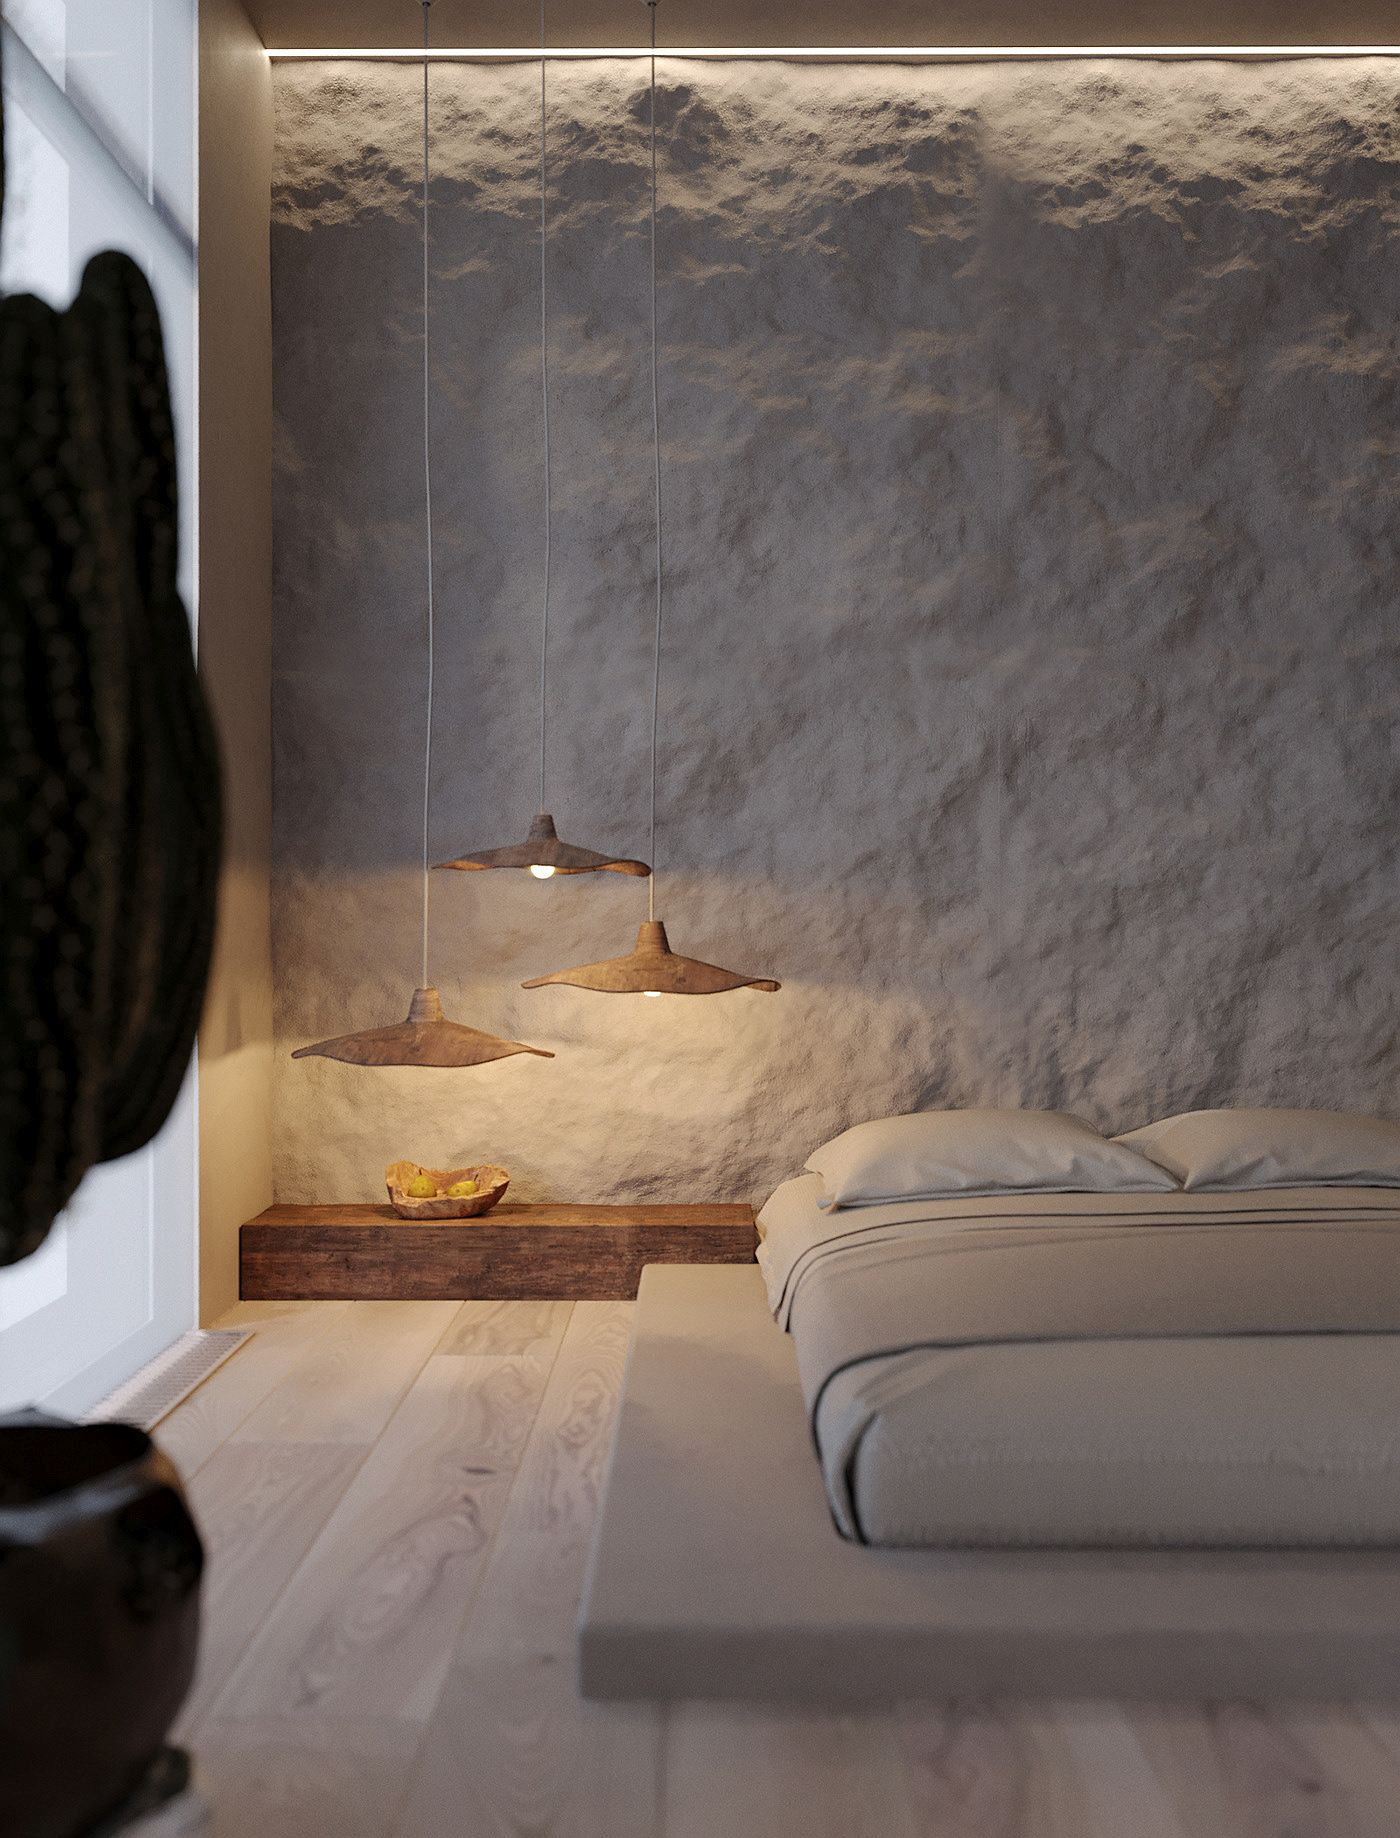 Beautifully textured clay walls of the bedroom accenuate the Wabi Sabi design philosophy of the bedroom